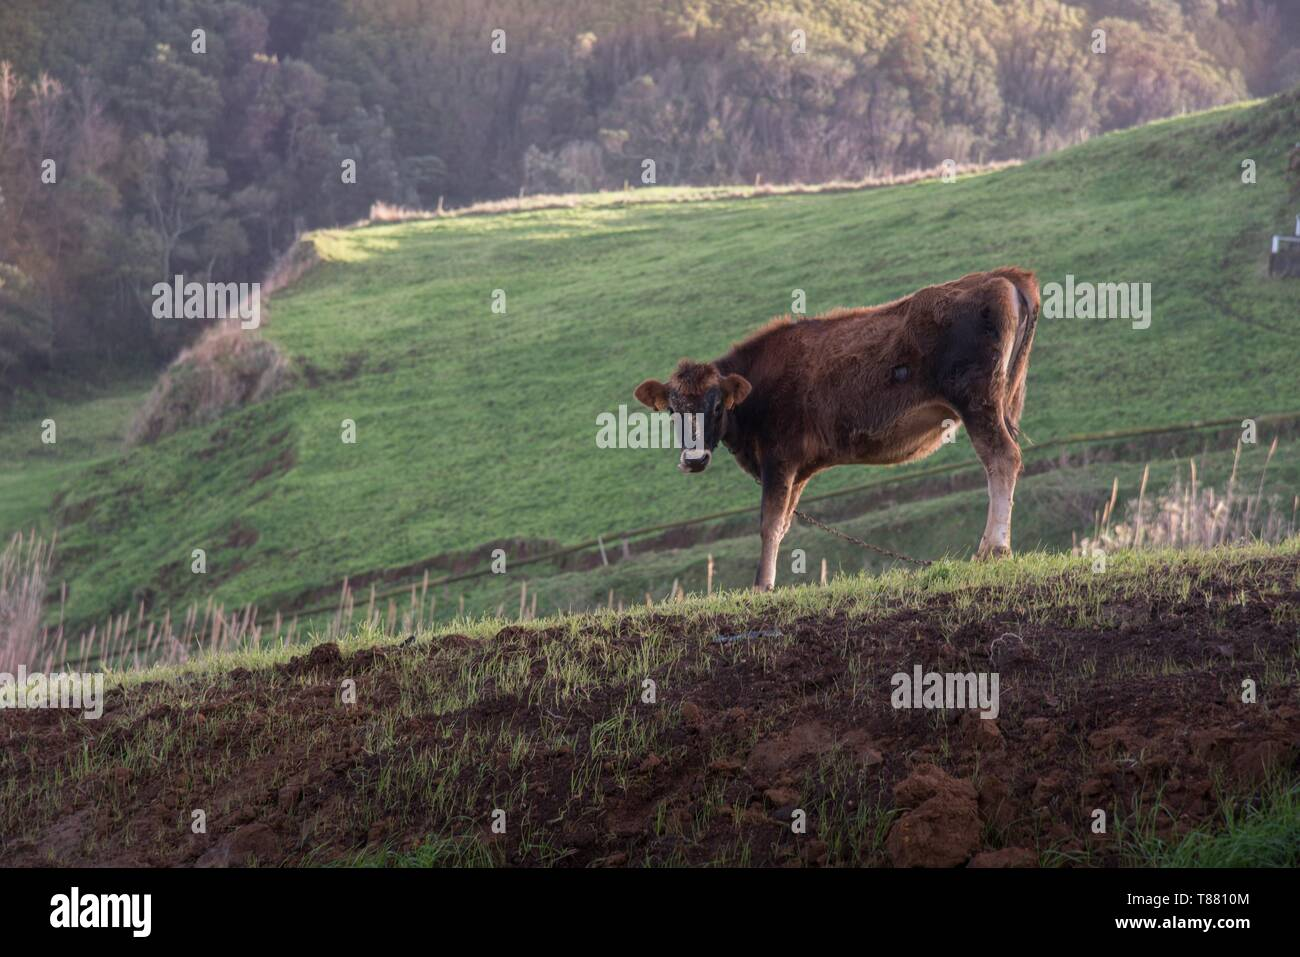 cow on a slope Kuh am Hang - Stock Image